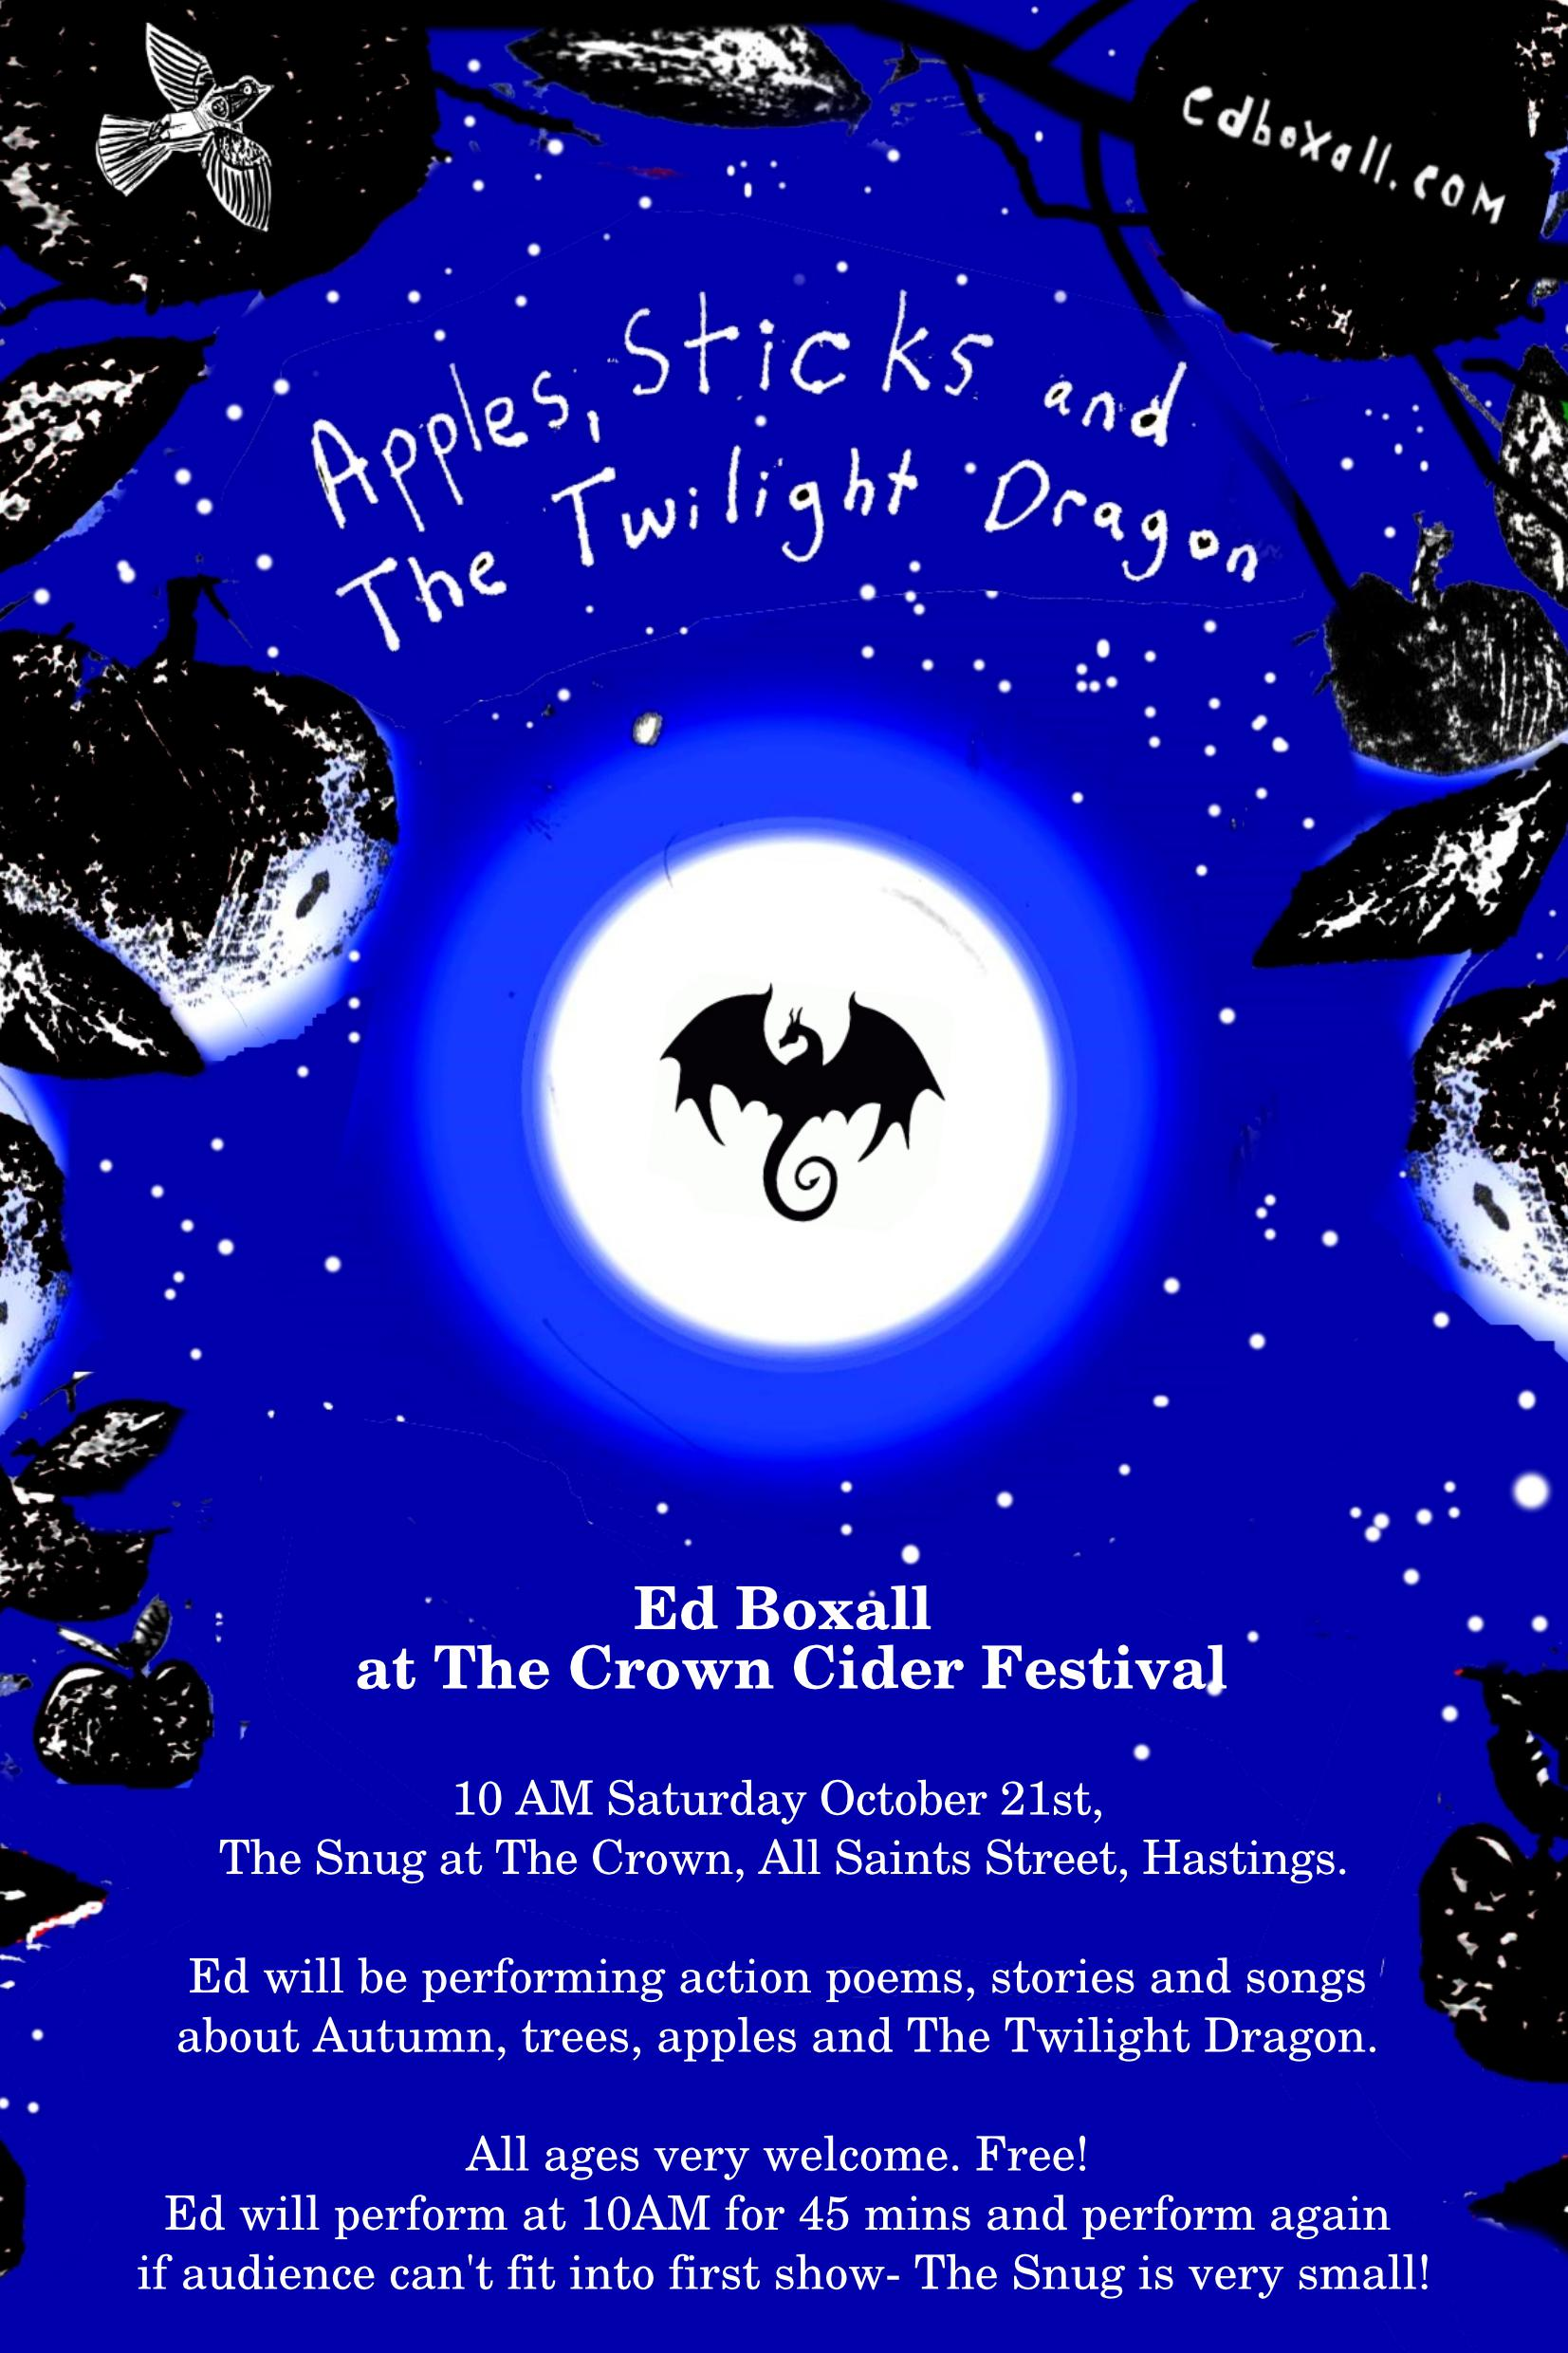 Poster for Ed Boxall: Apples, Sticks and The Twilight Dragon